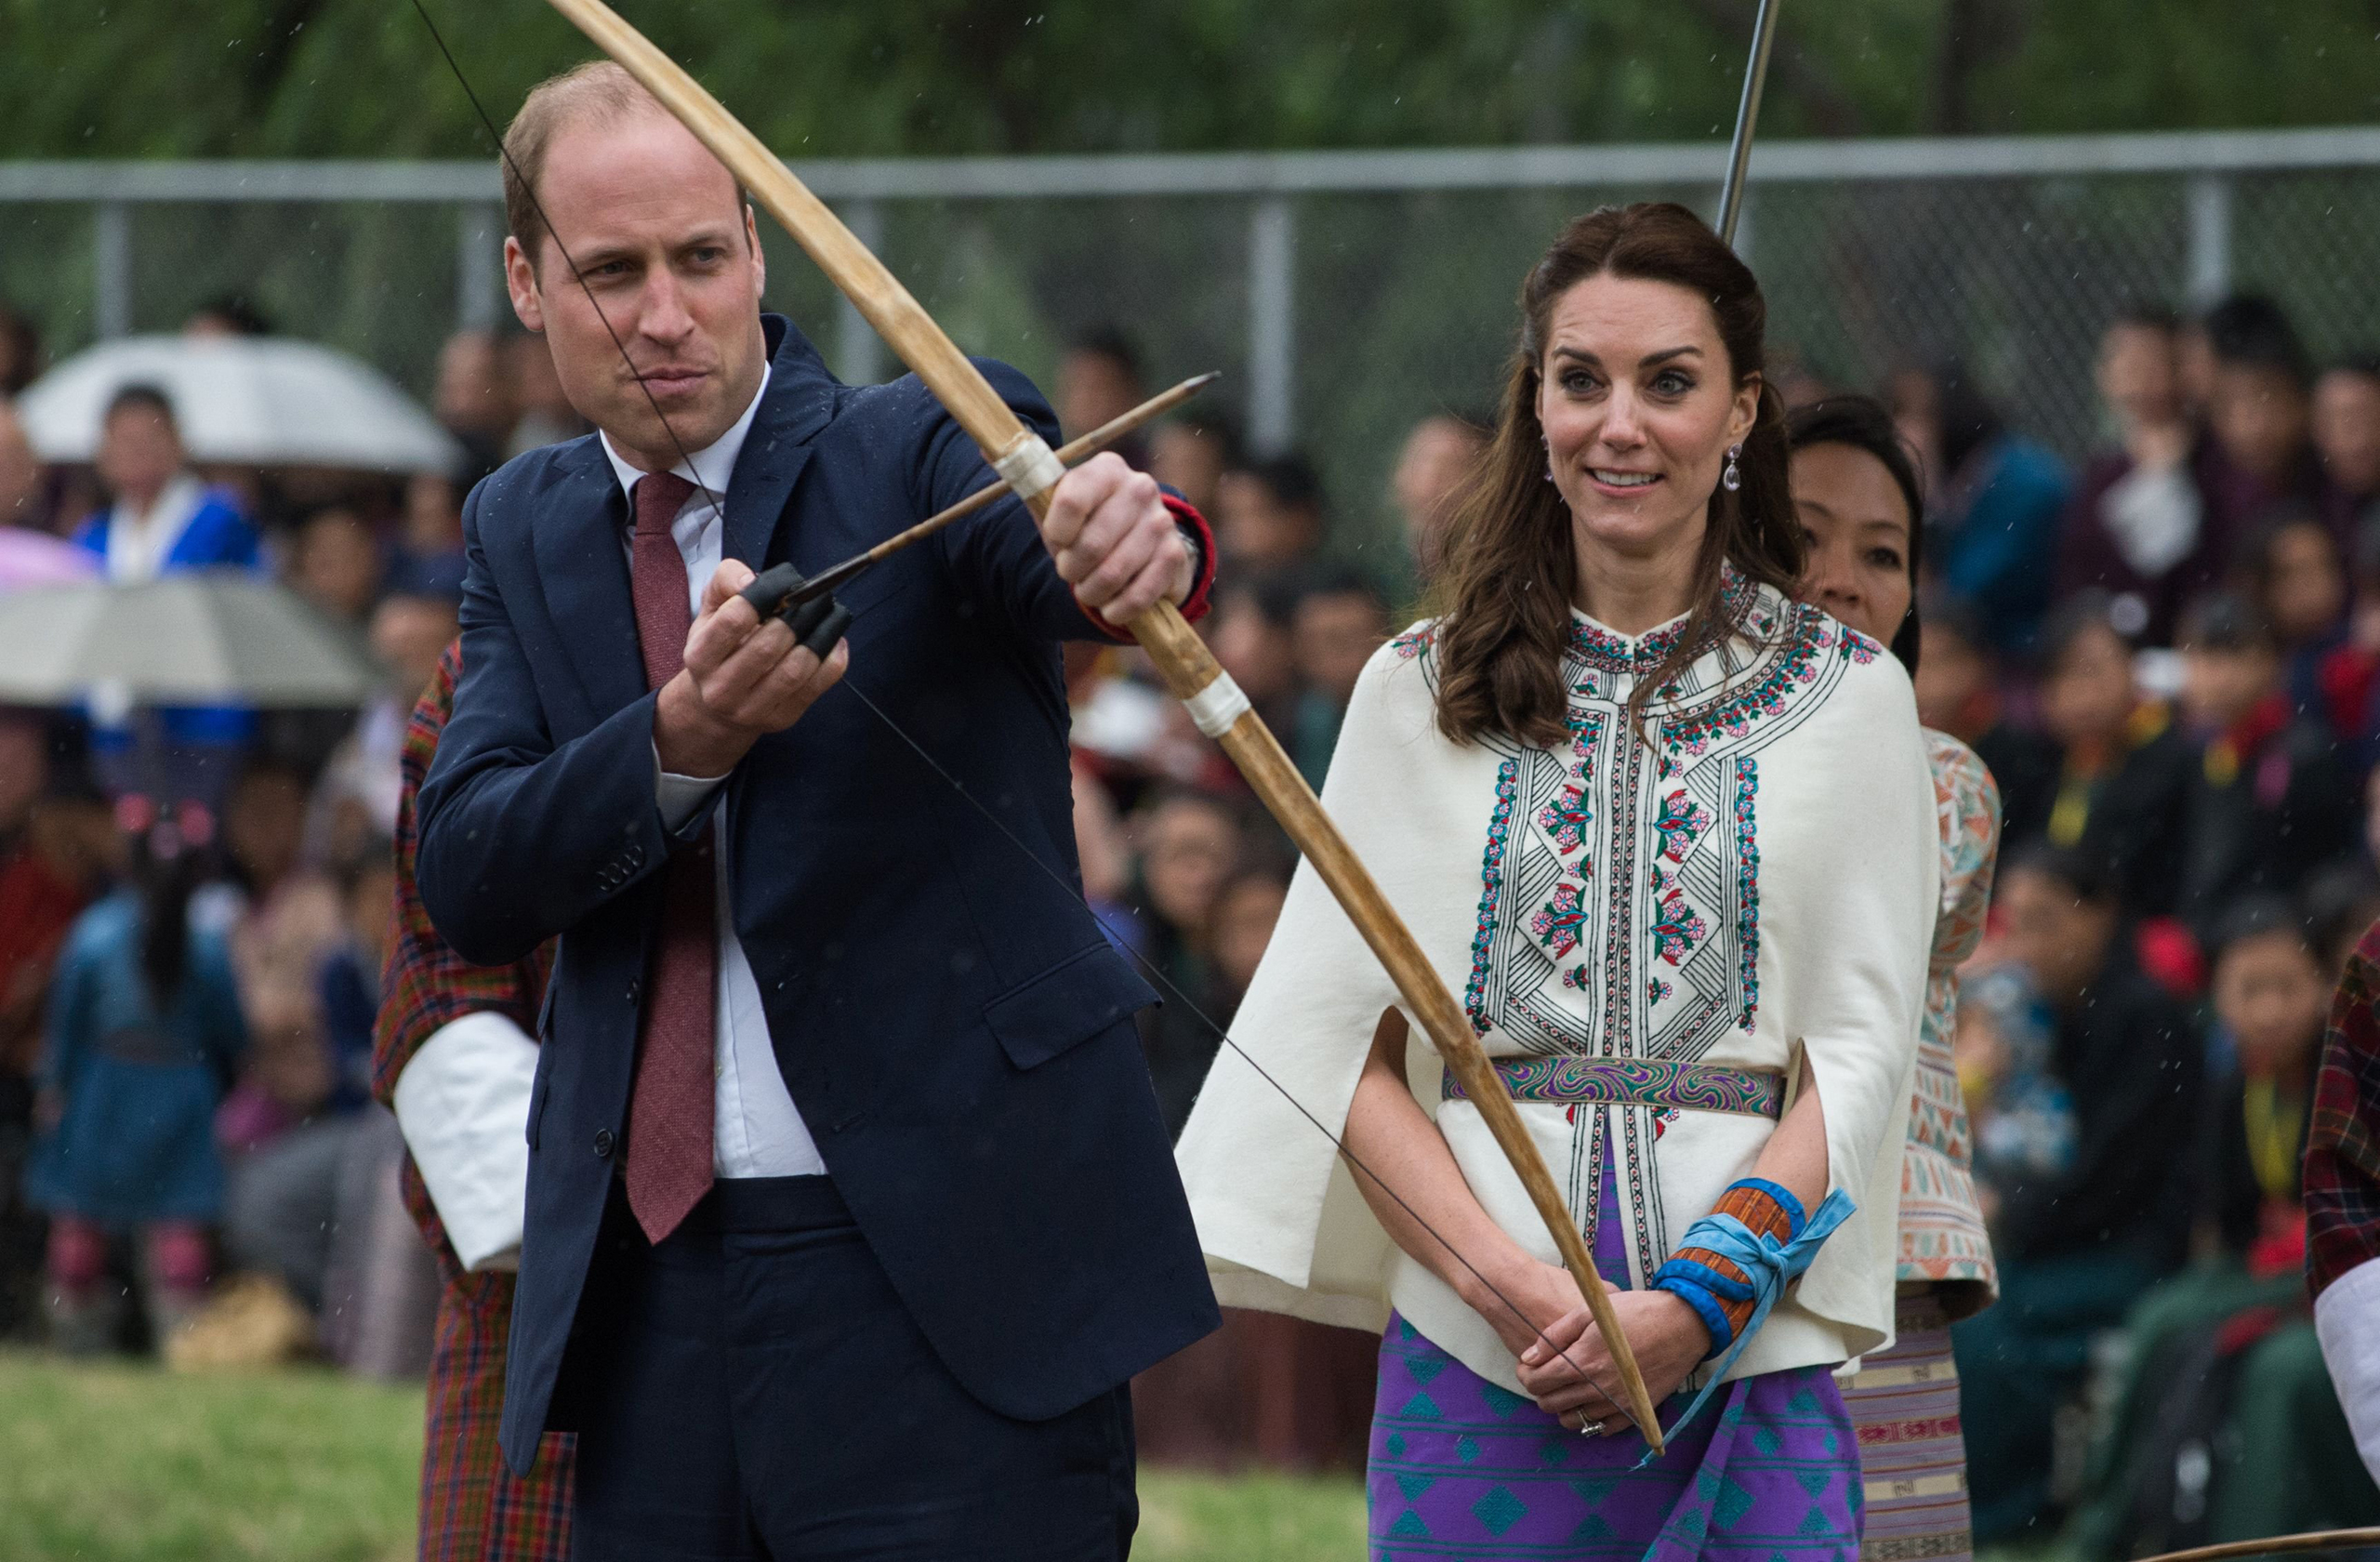 Catherine, Duchess of Cambridge, looks on as she watches Prince William, Duke of Cambridge, prepare to fire an arrow at the Changlingmethang national archery ground in Thimphu, Bhutan, April 14, 2016.